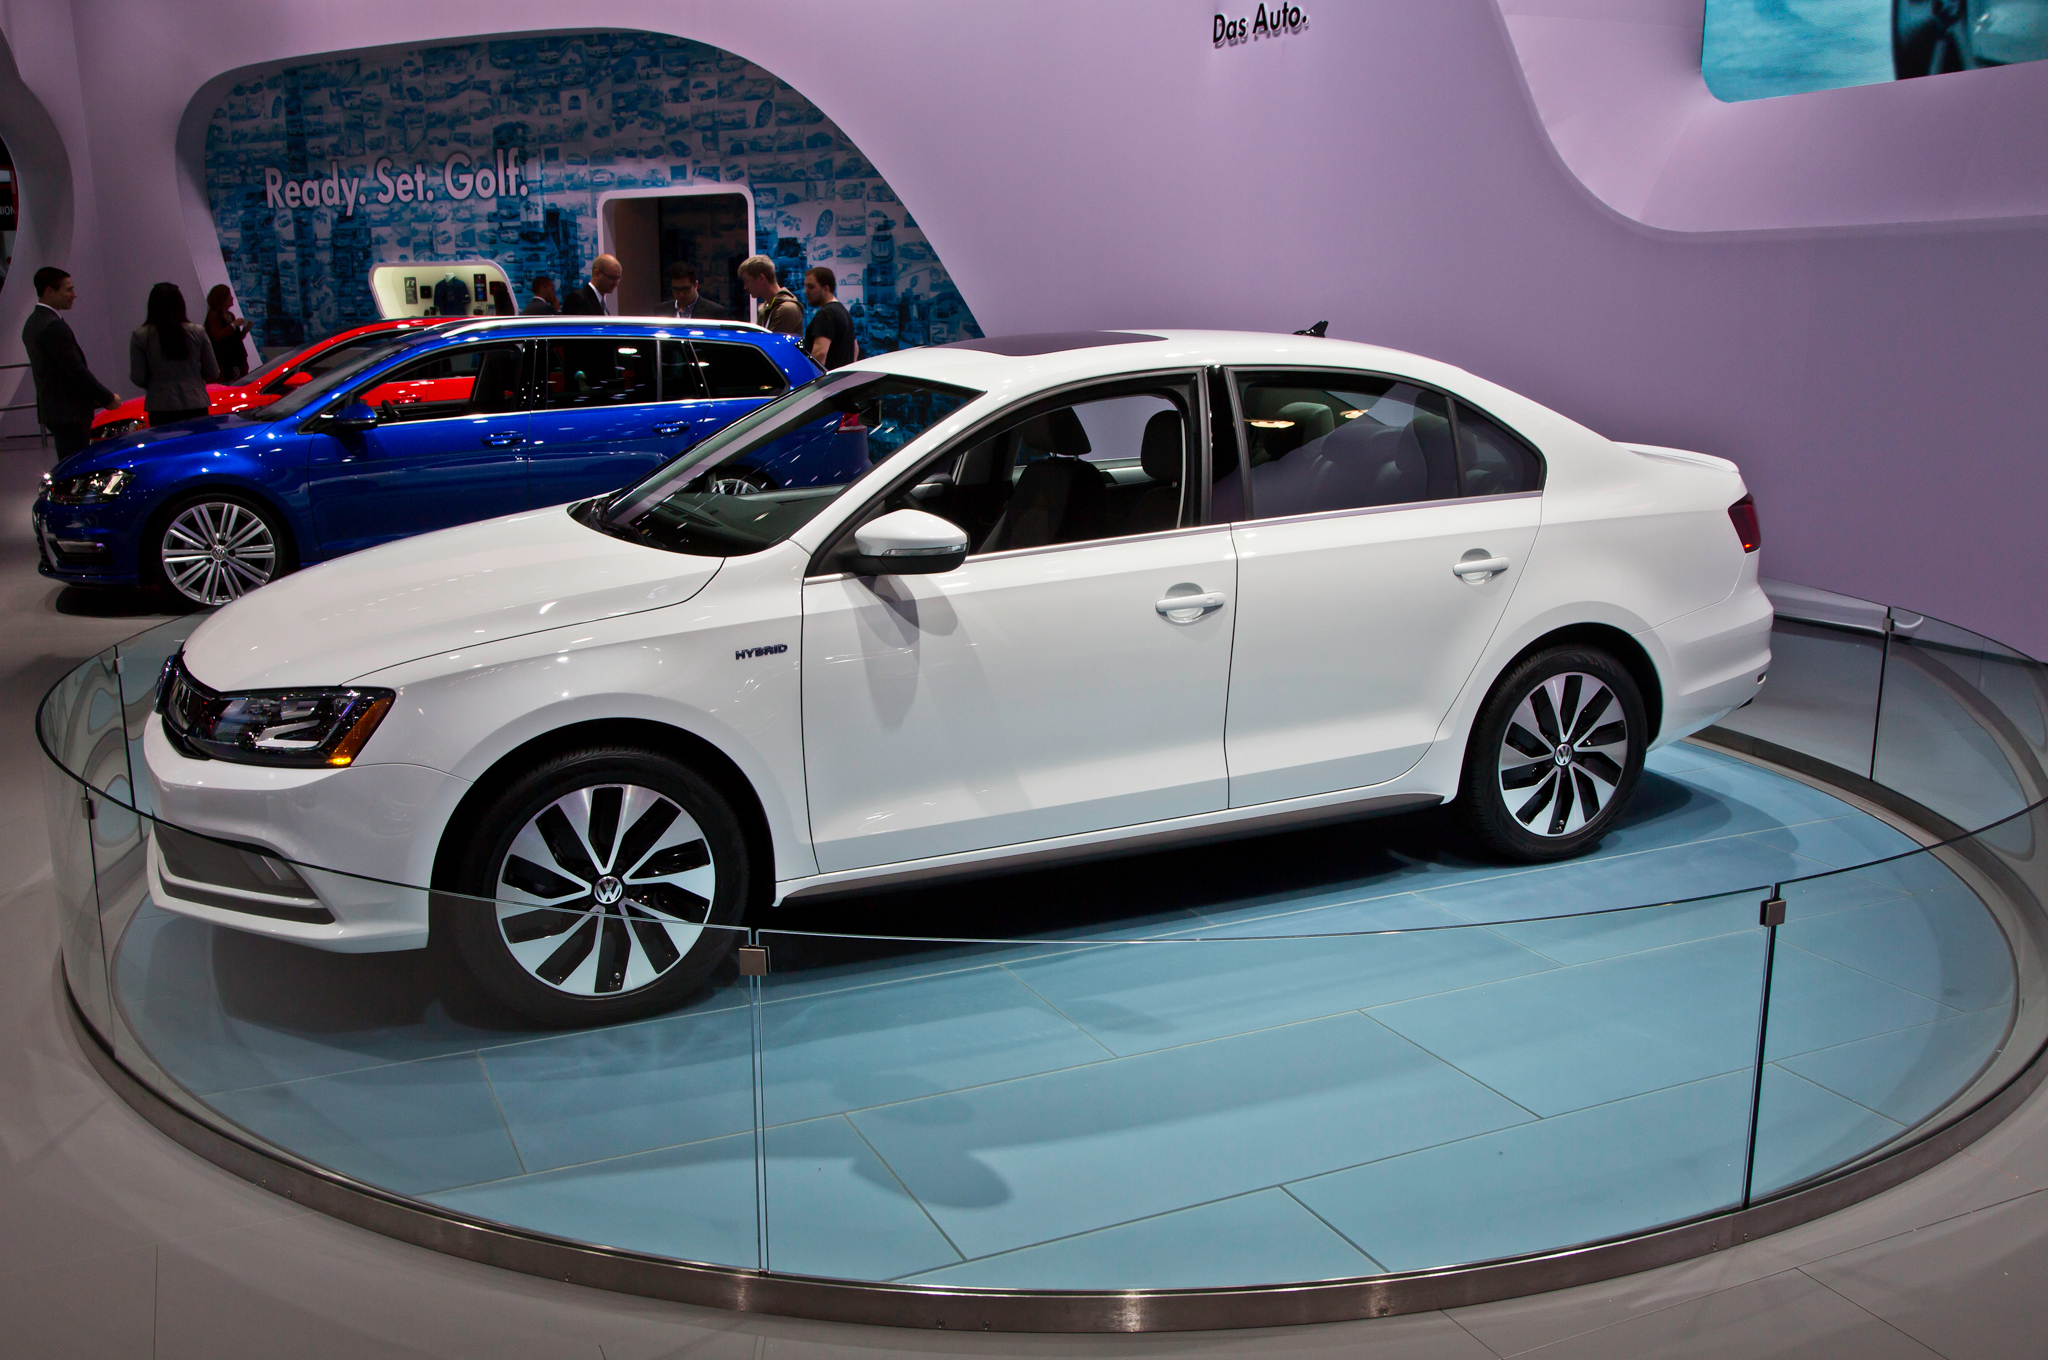 2010 Volkswagen Jetta Hybrid Photo 2